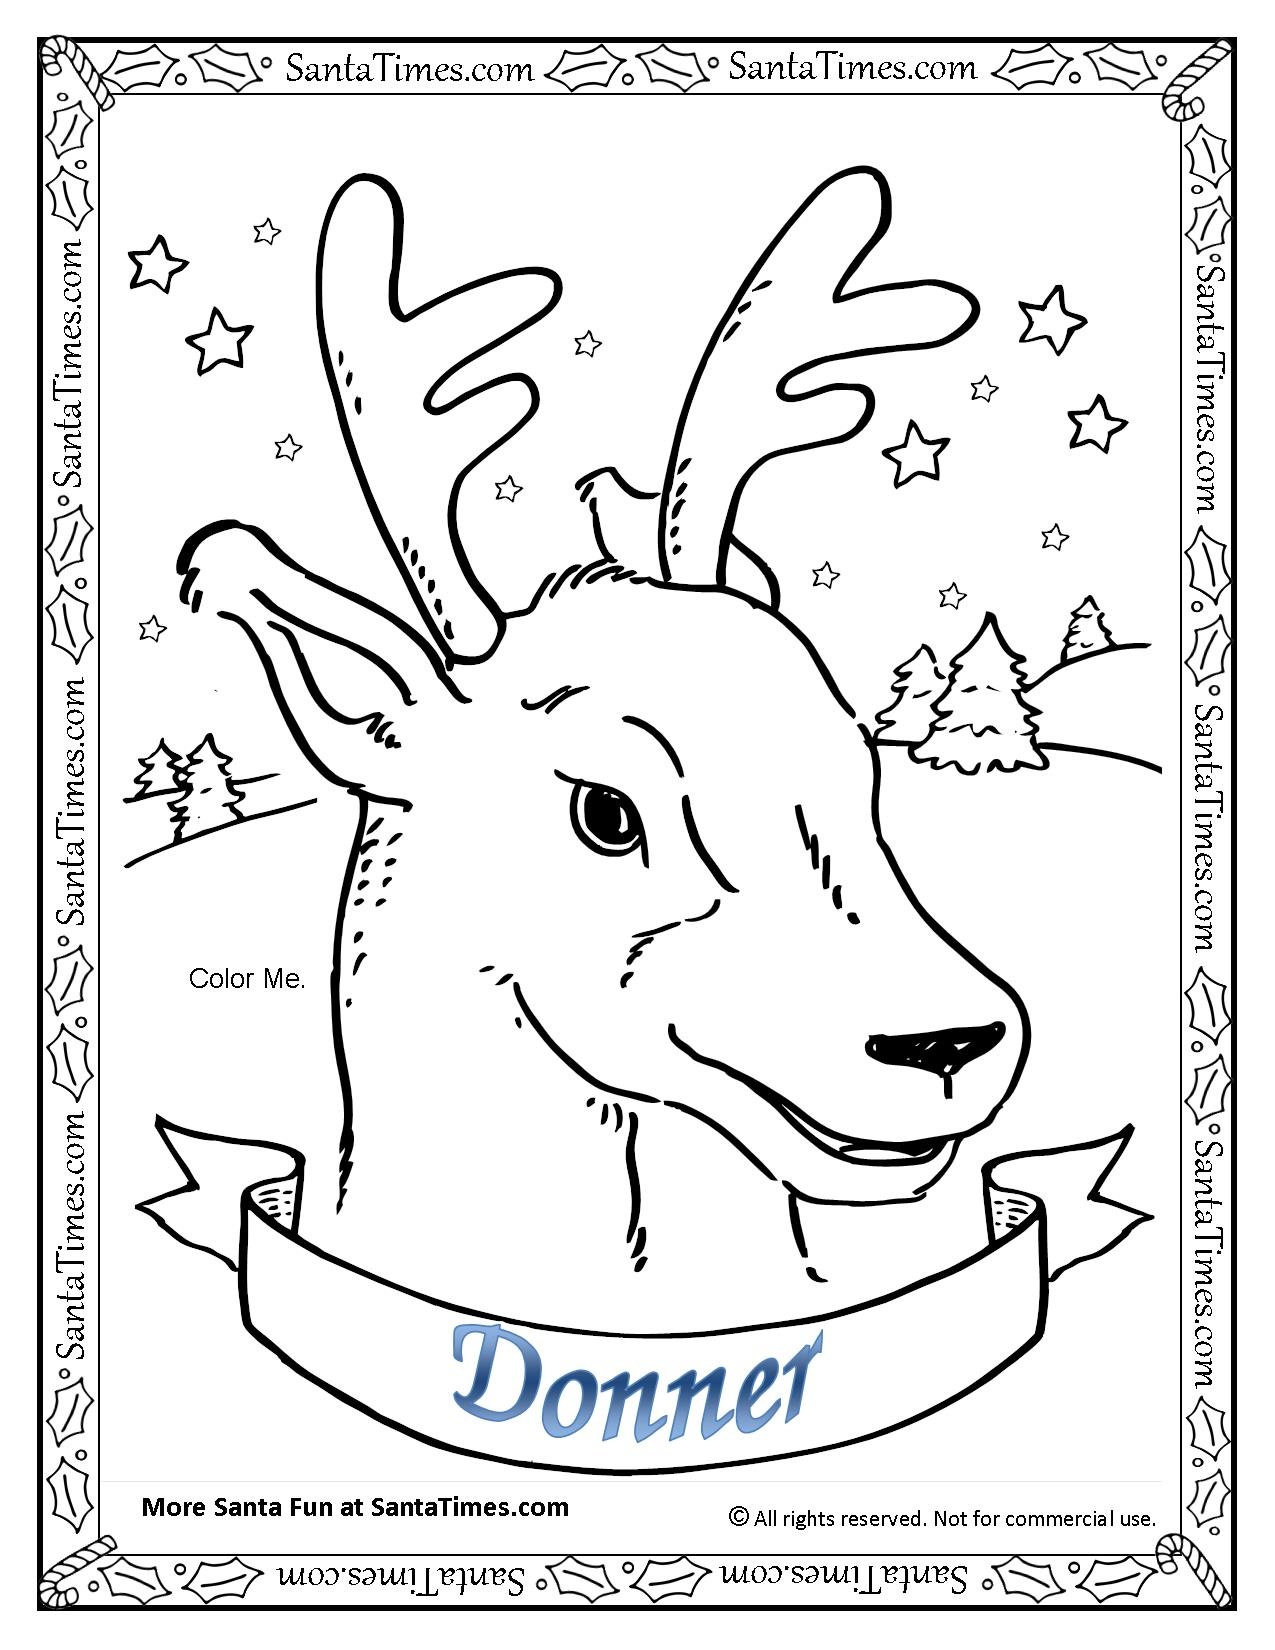 donner the reindeer